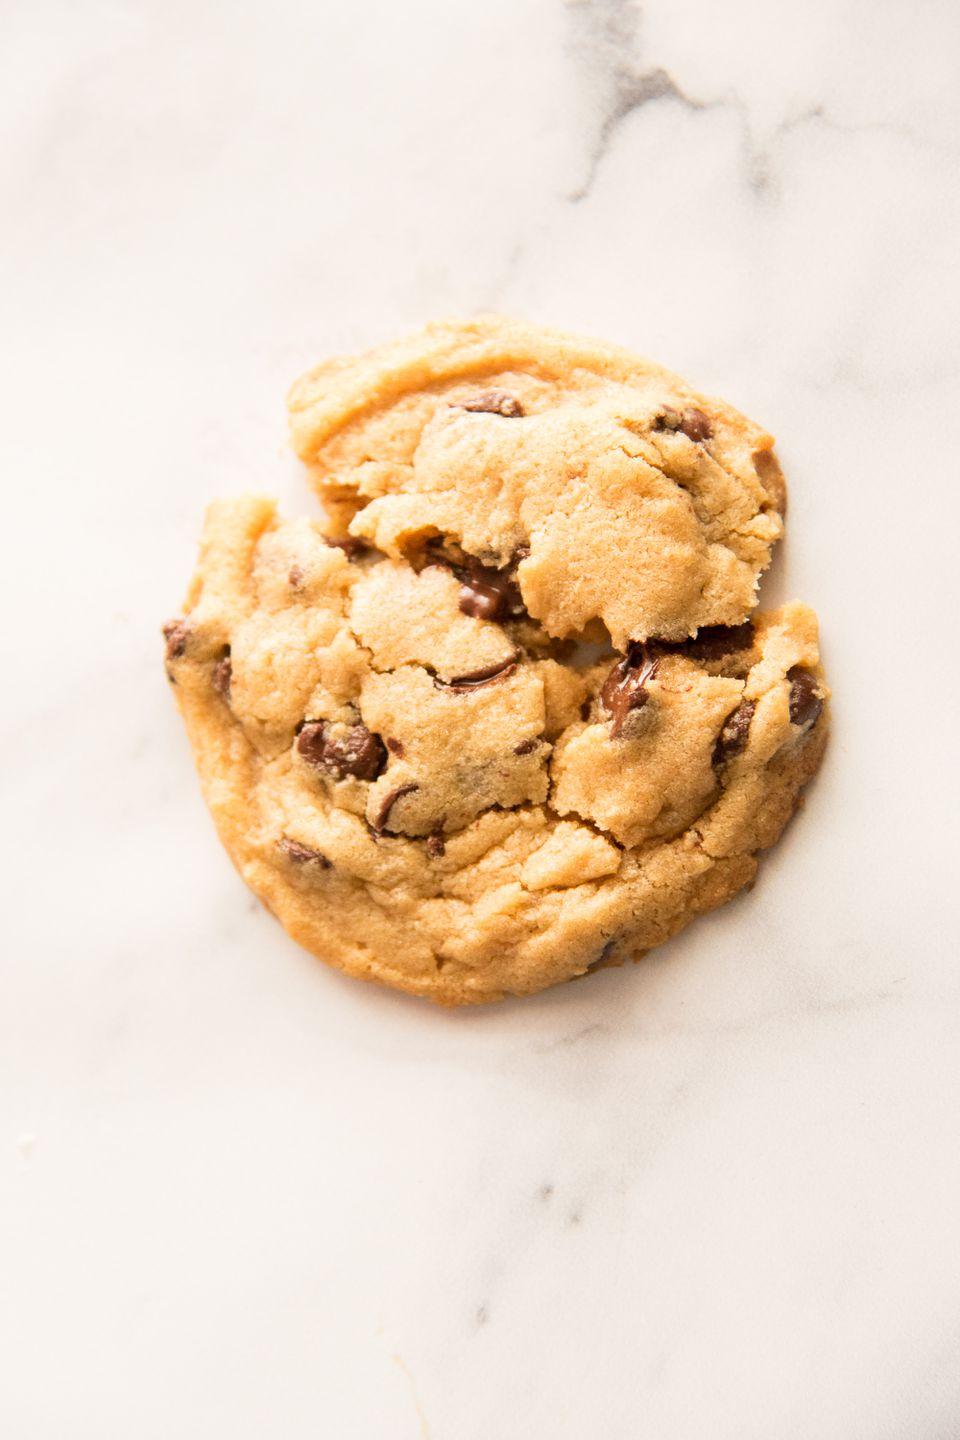 Overhead view of a single Homemade Peanut Butter Chocolate Chip Cookie.